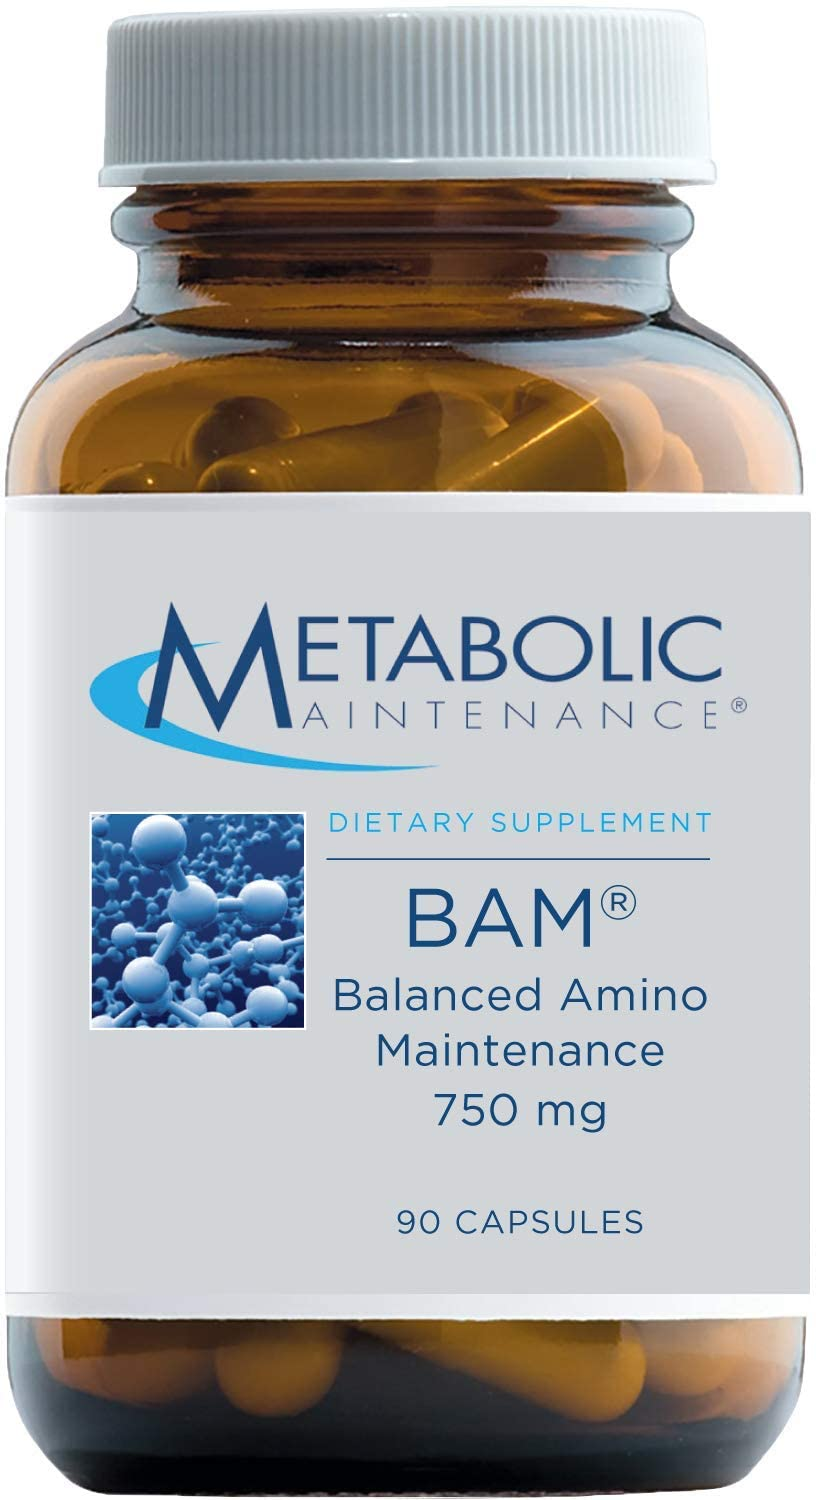 Metabolic Maintenance BAM Balanced Amino Maintenance - Free Form Amino Acid Supplement with Vitamin B6 + Chromium - Energy, Detox + Mood Support, Promotes Muscles + Protein Synthesis (90 Capsules)